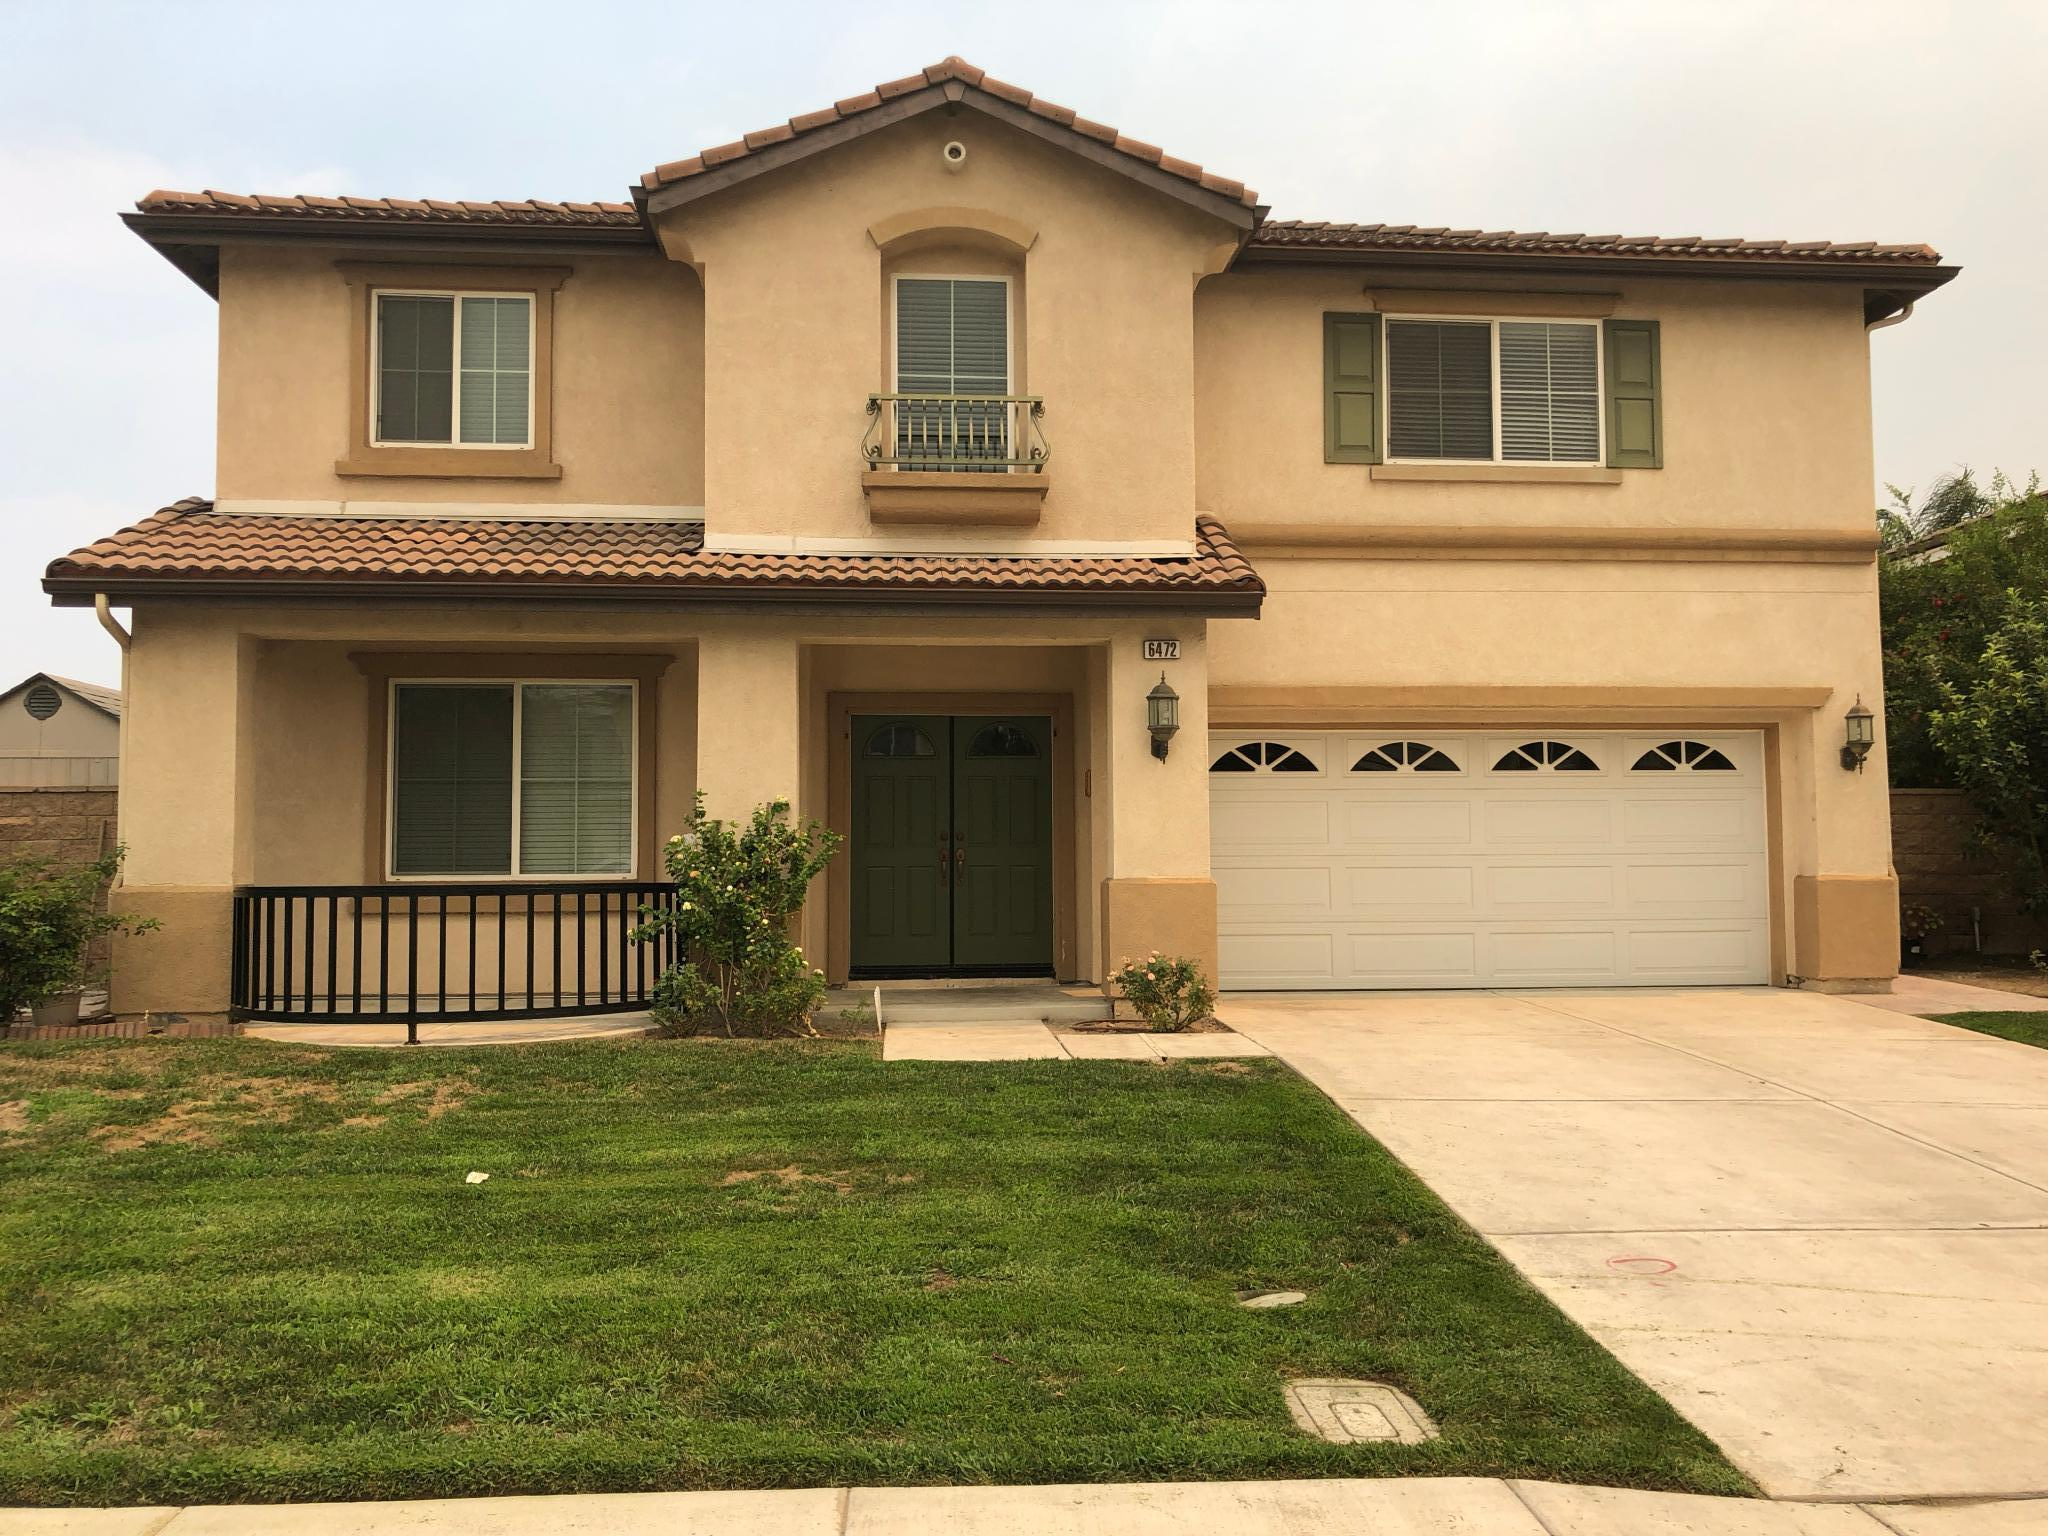 6472 Emerald Downs St, Corona, CA 92880 For Rent | Trulia